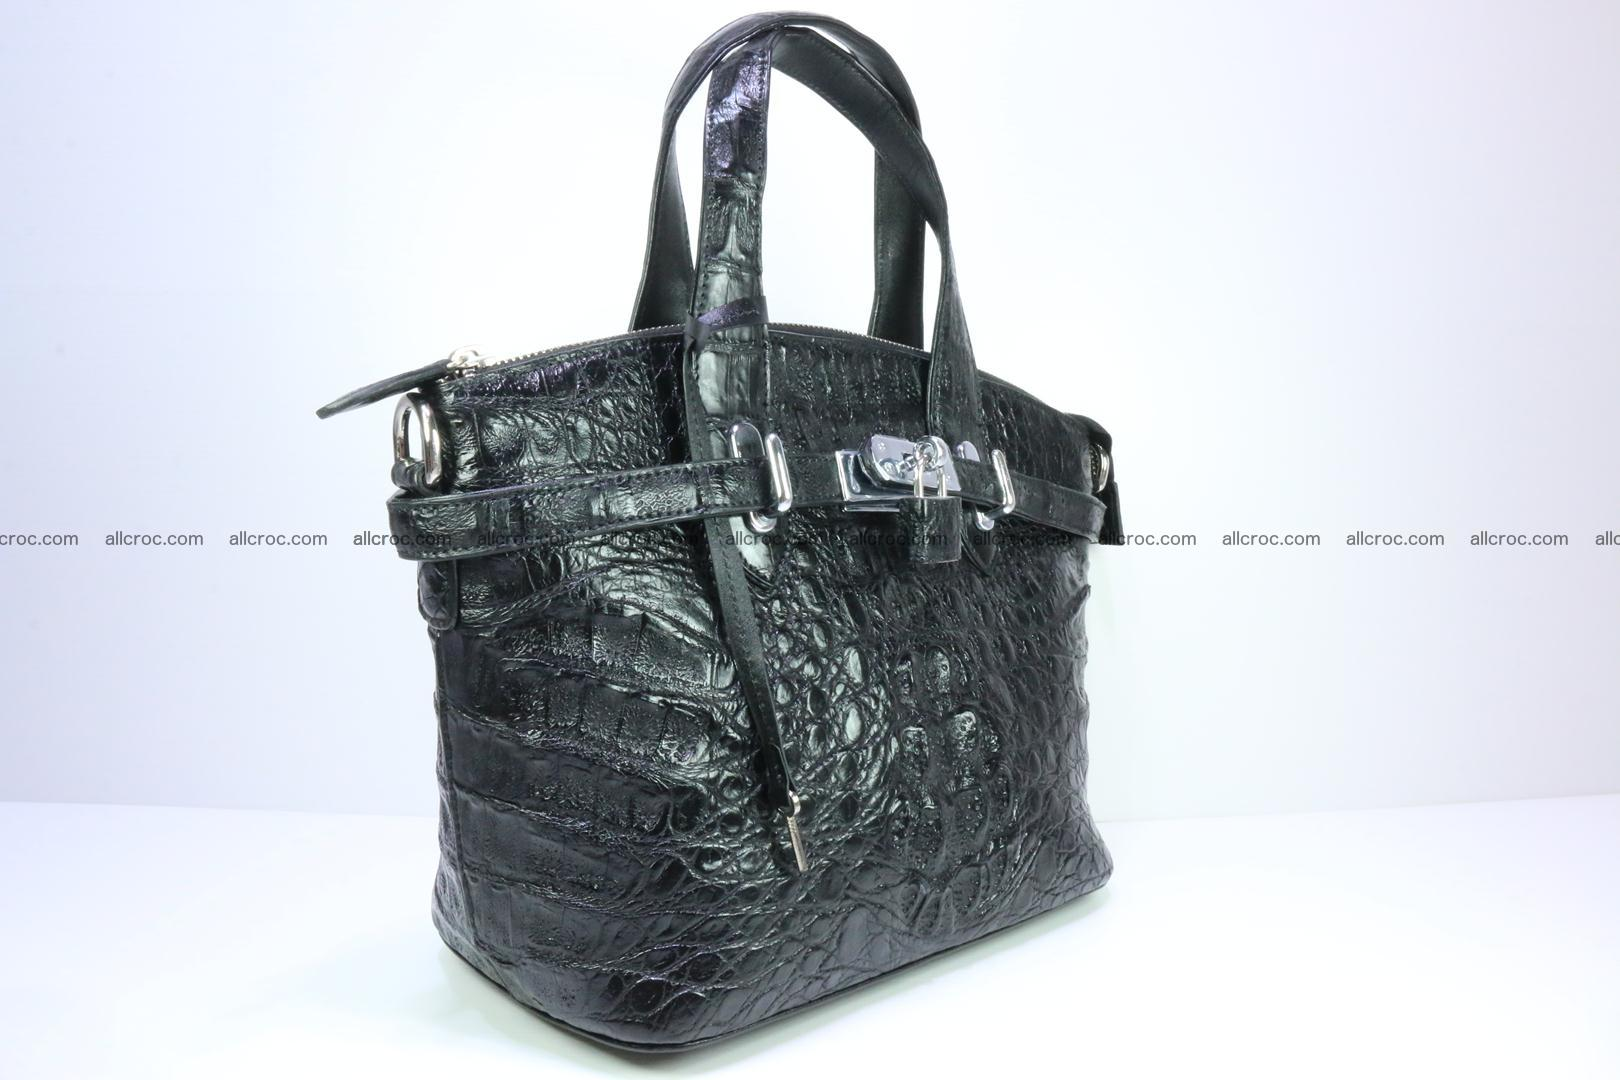 Genuine crocodile handbag for ladies 051 Foto 1